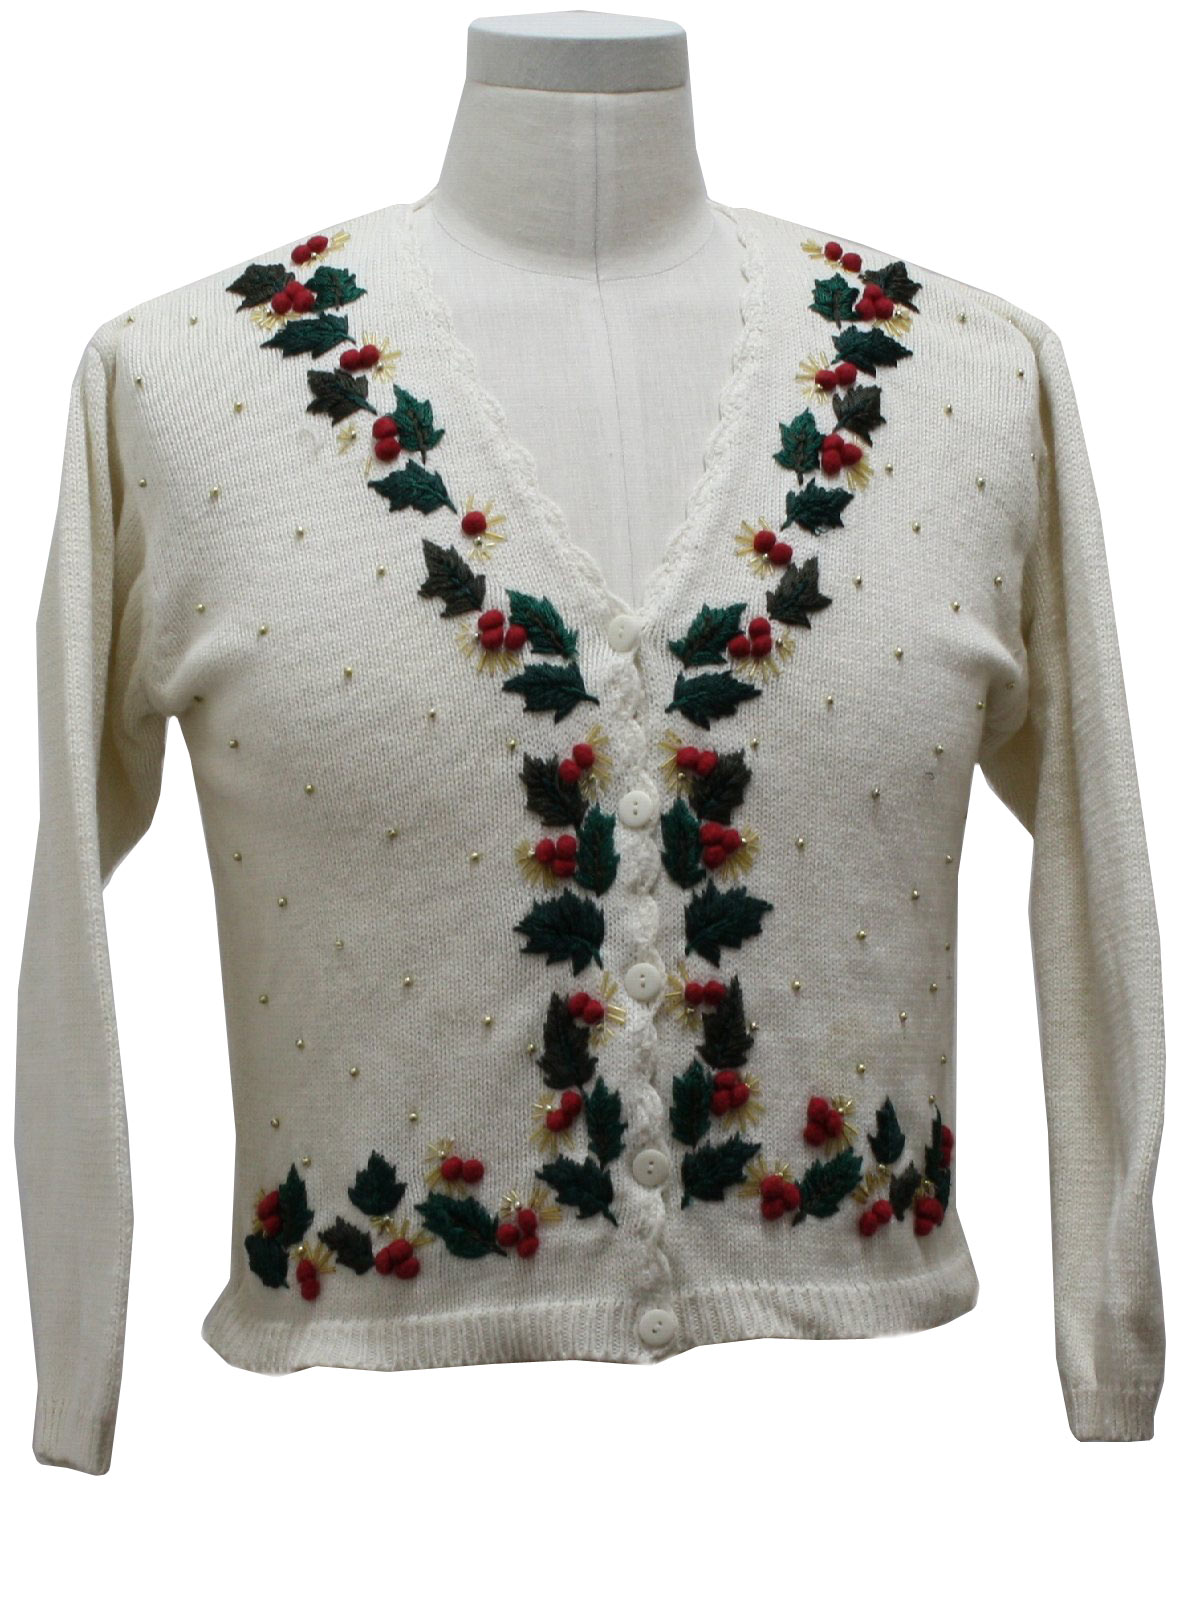 furnishings, travel clothing dresses. Christmas Clothes for Women